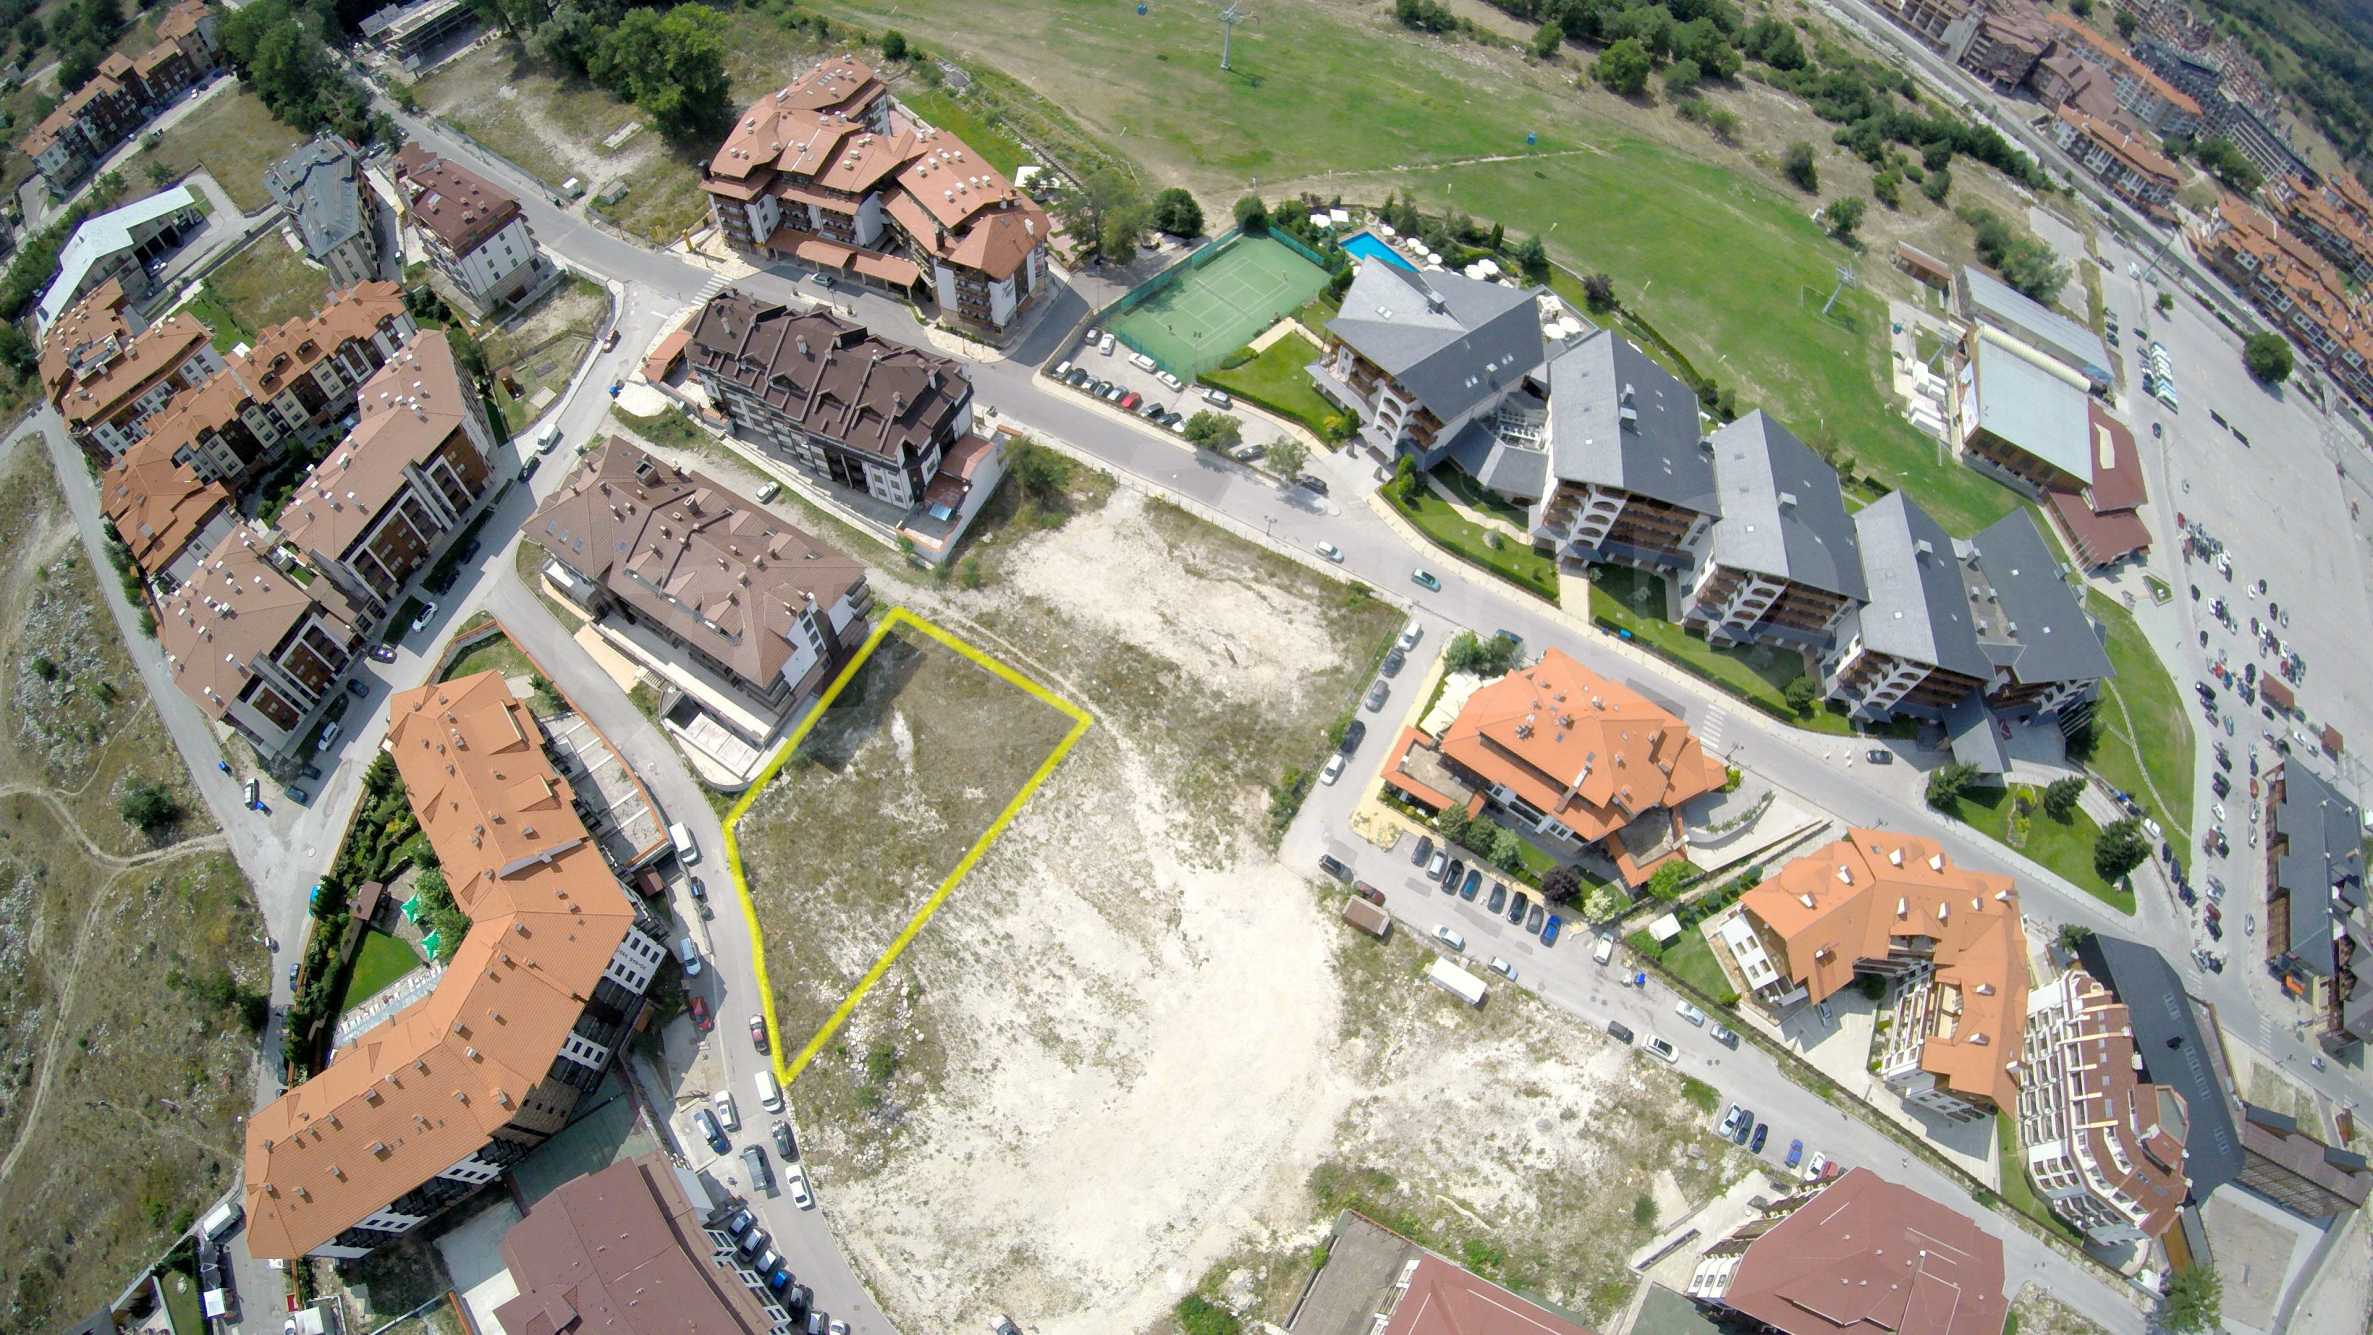 Chateau Blanc: Probably the best investment opportunity in Bansko... 32